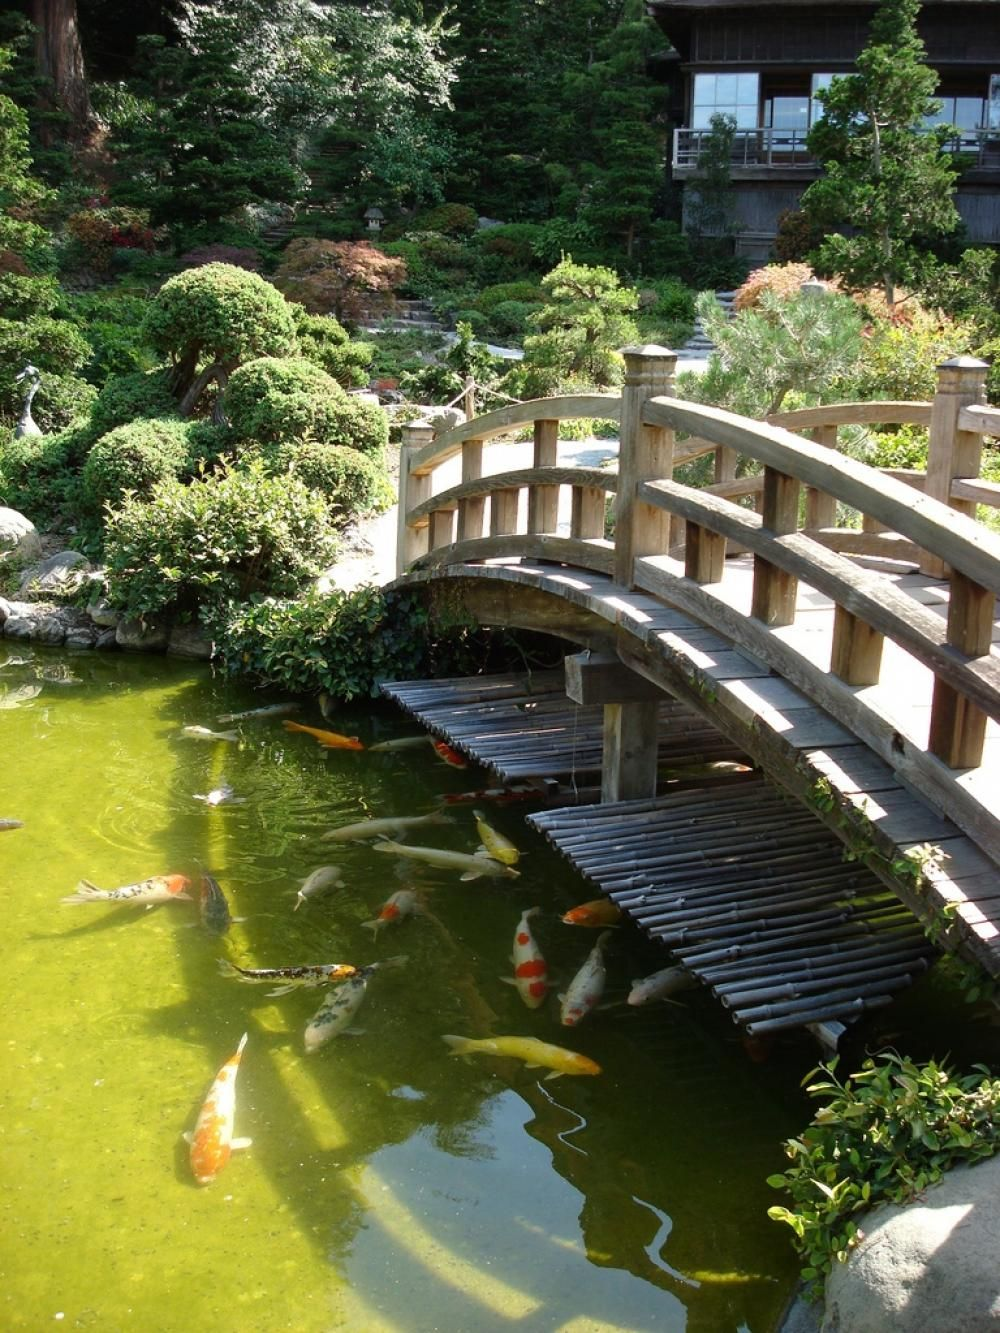 Gardening large koi pond with bridge in japanese garden for Backyard koi pond designs